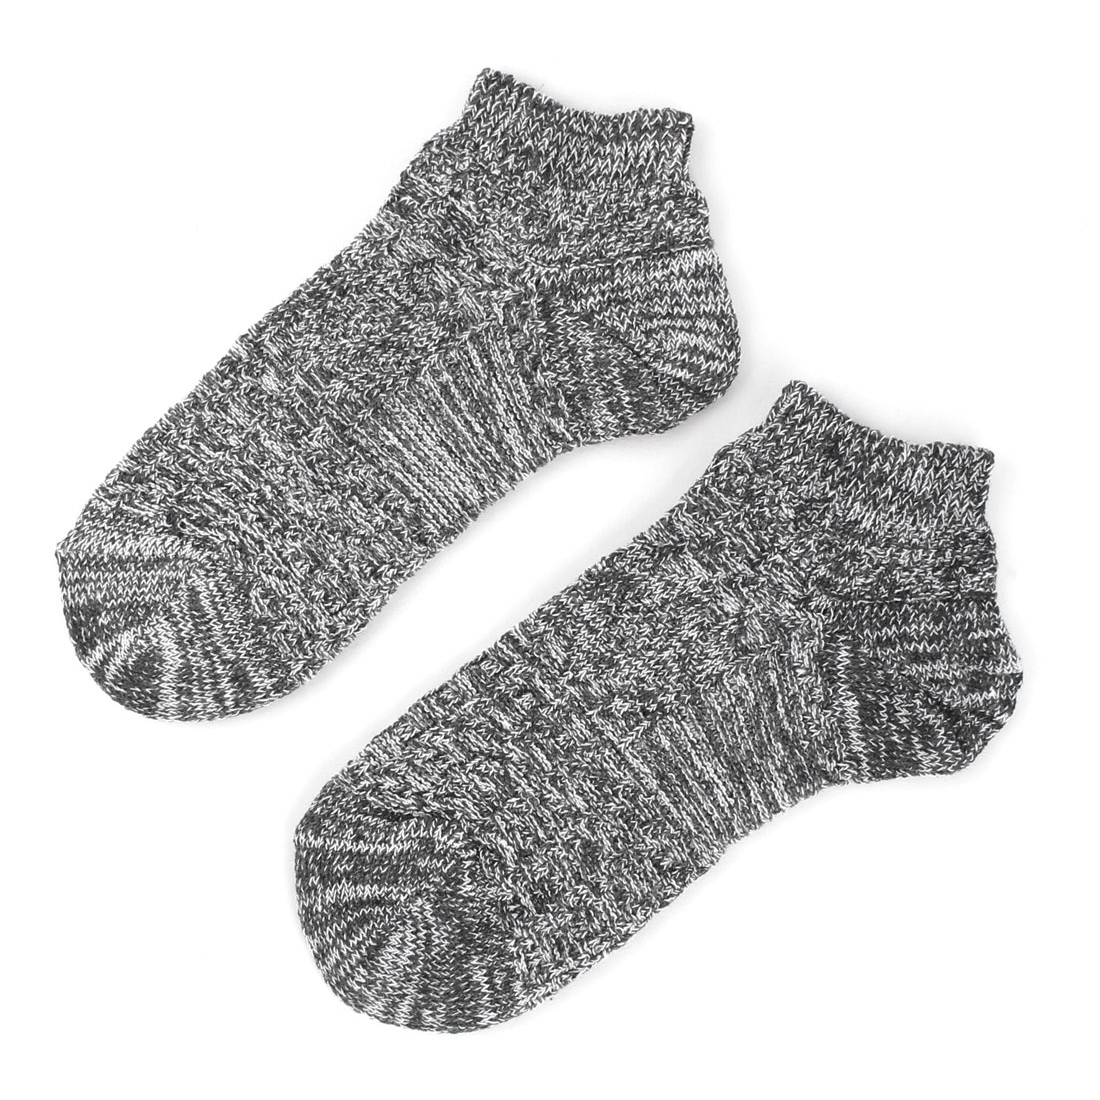 Man Elastic Low Cut Cuffs Ankle Length Short Socks Gray White